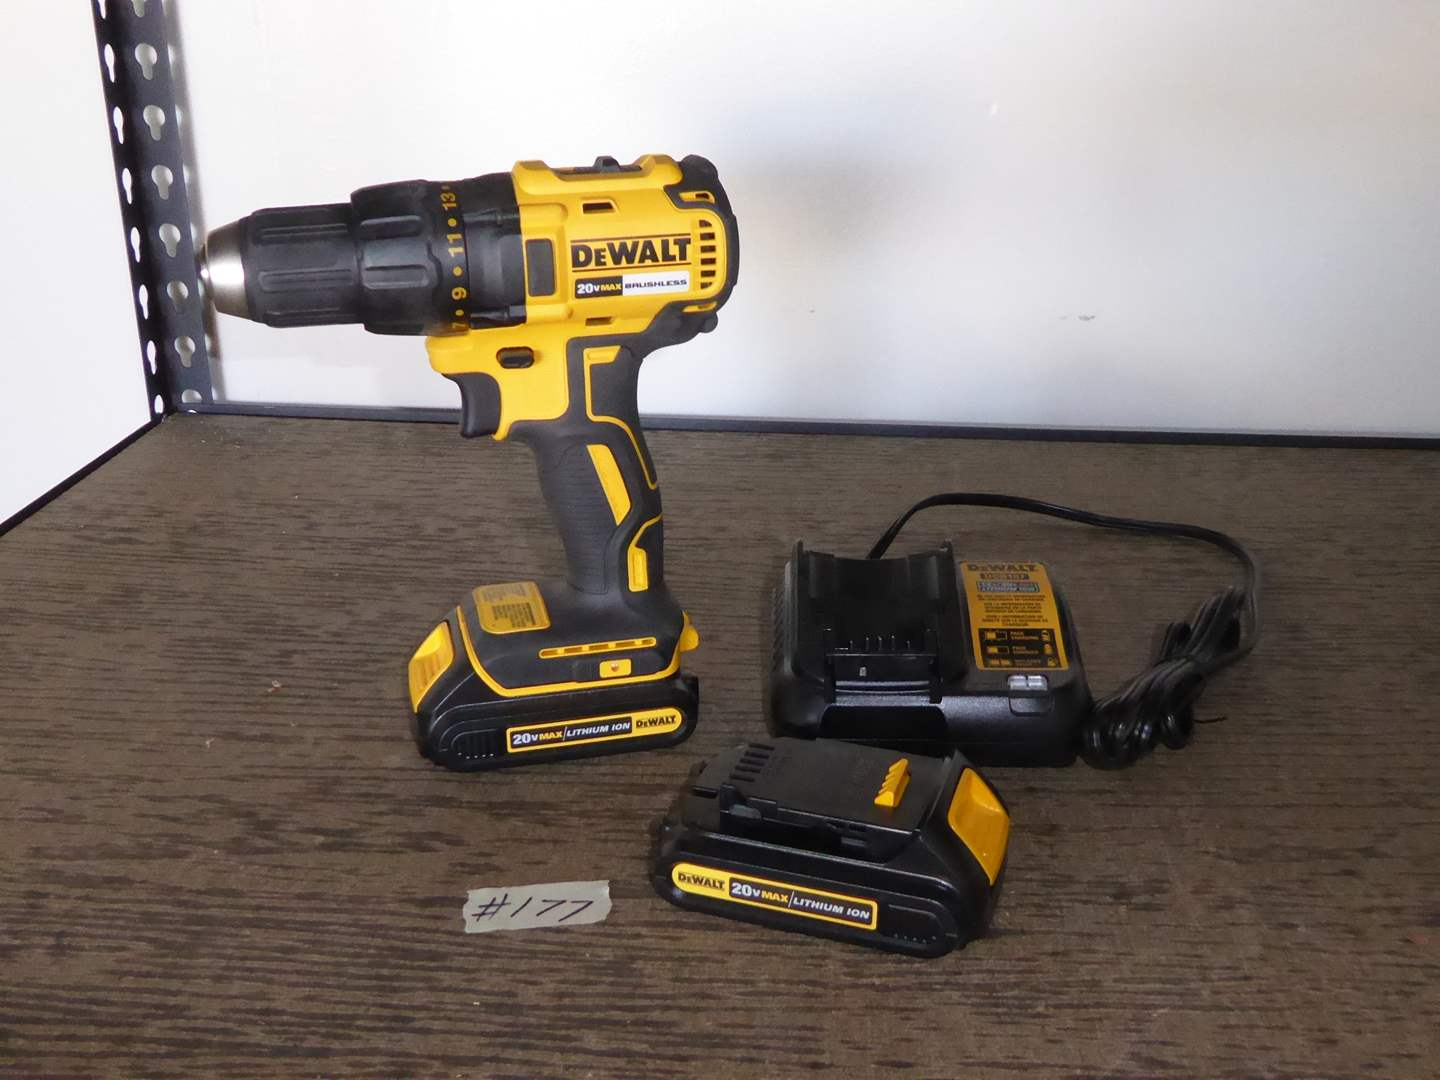 Lot # 177 - DeWalt 20v Max Brushless Cordless Drill W/Batteries & Charger  (main image)